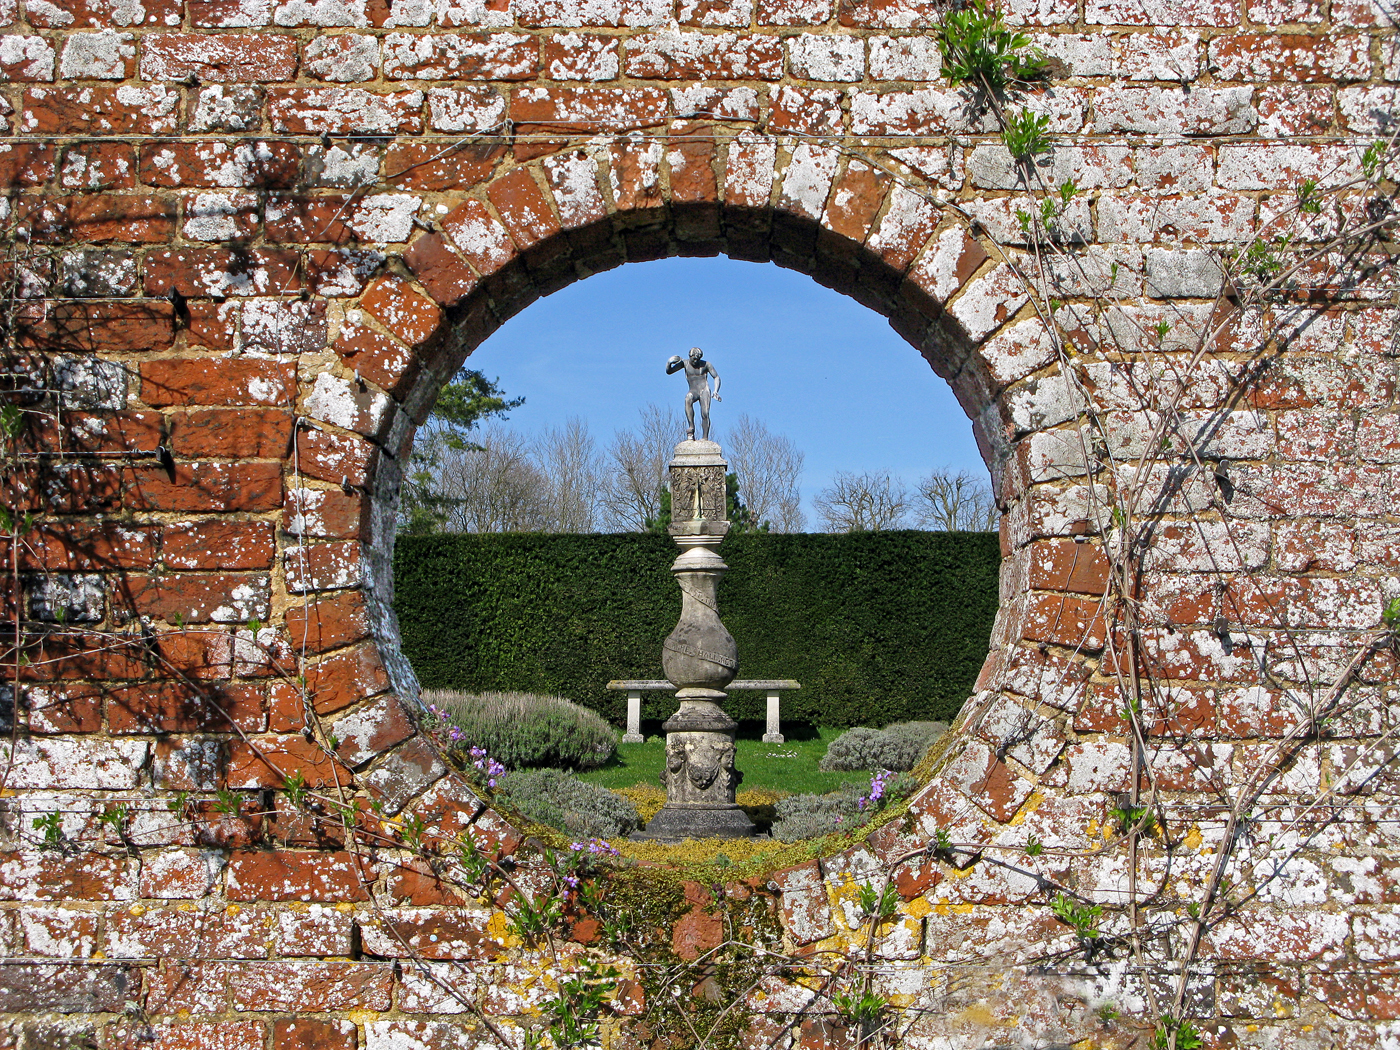 THROUGH THE PORTHOLE by Jim Morrissey